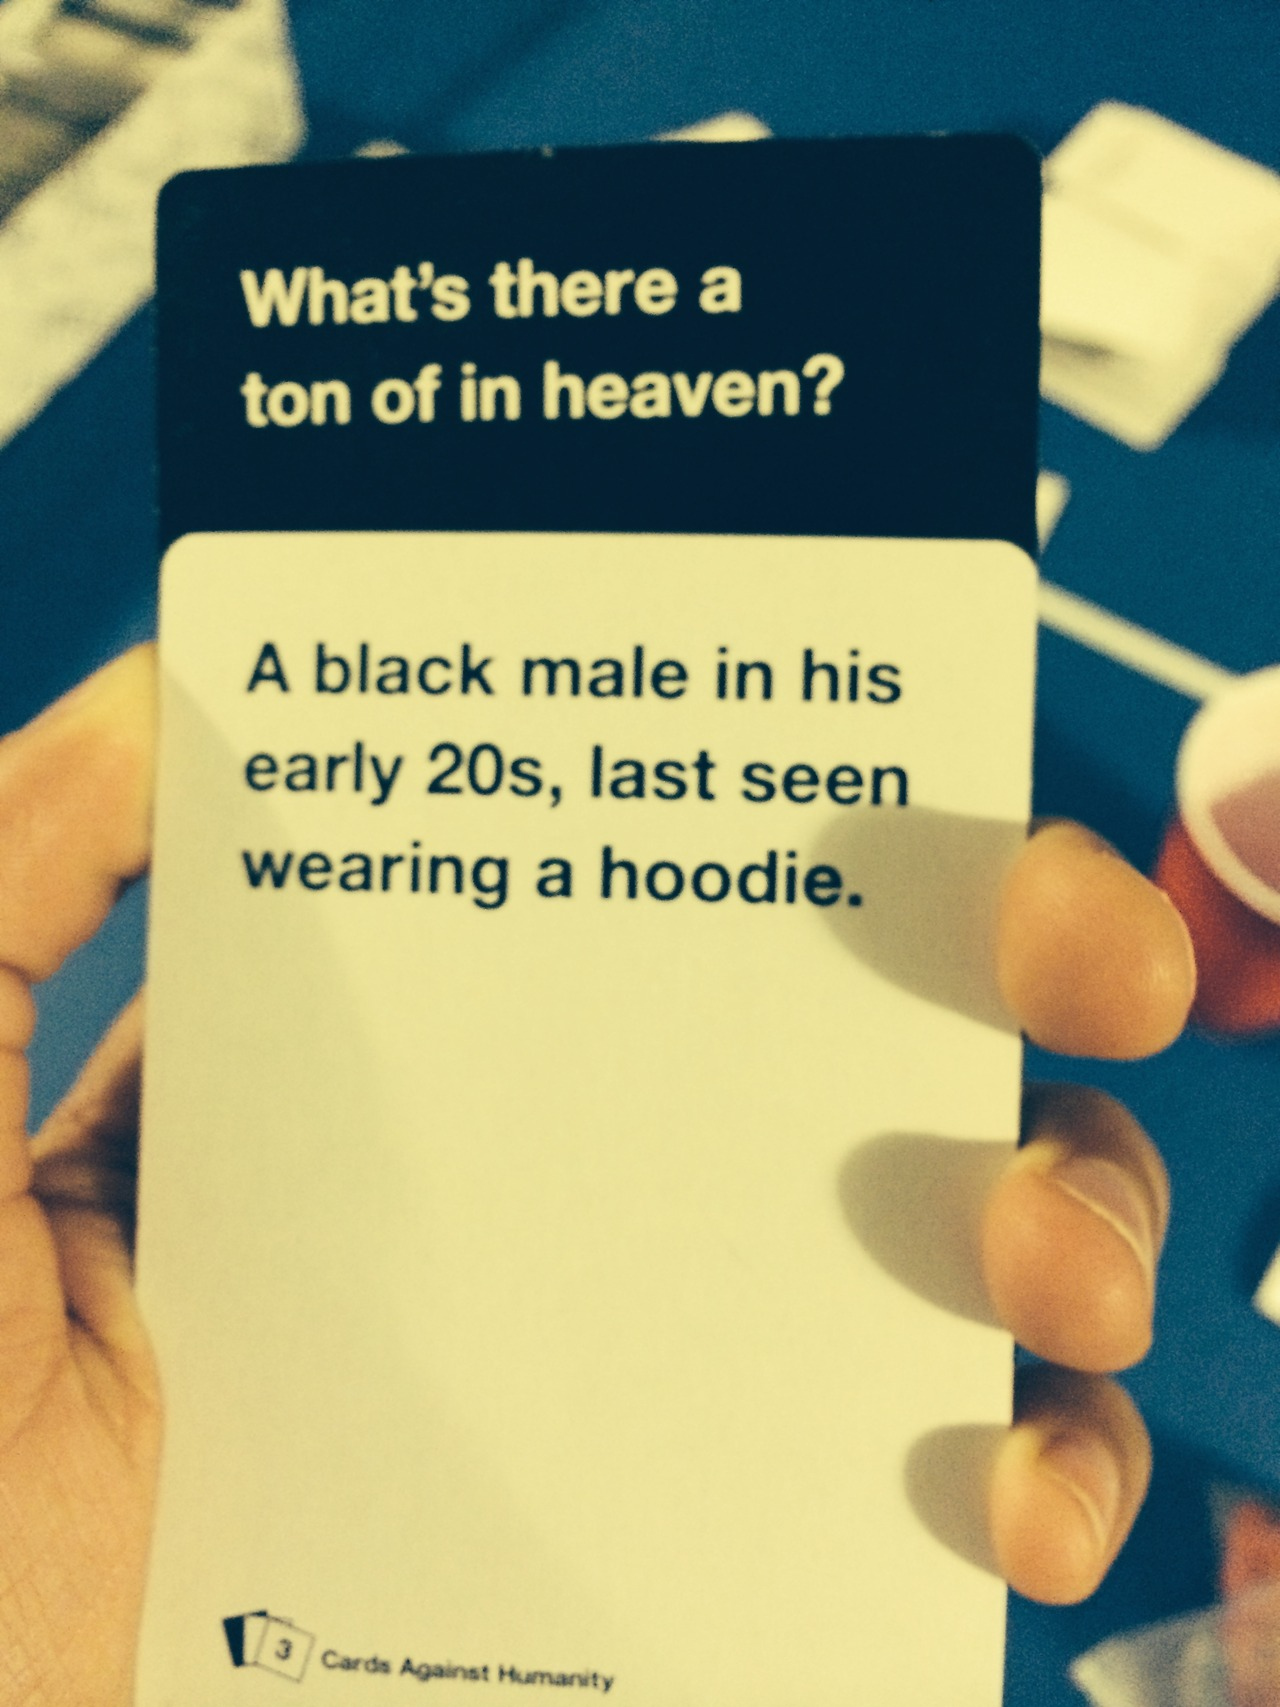 203 image 859725] cards against humanity know your meme